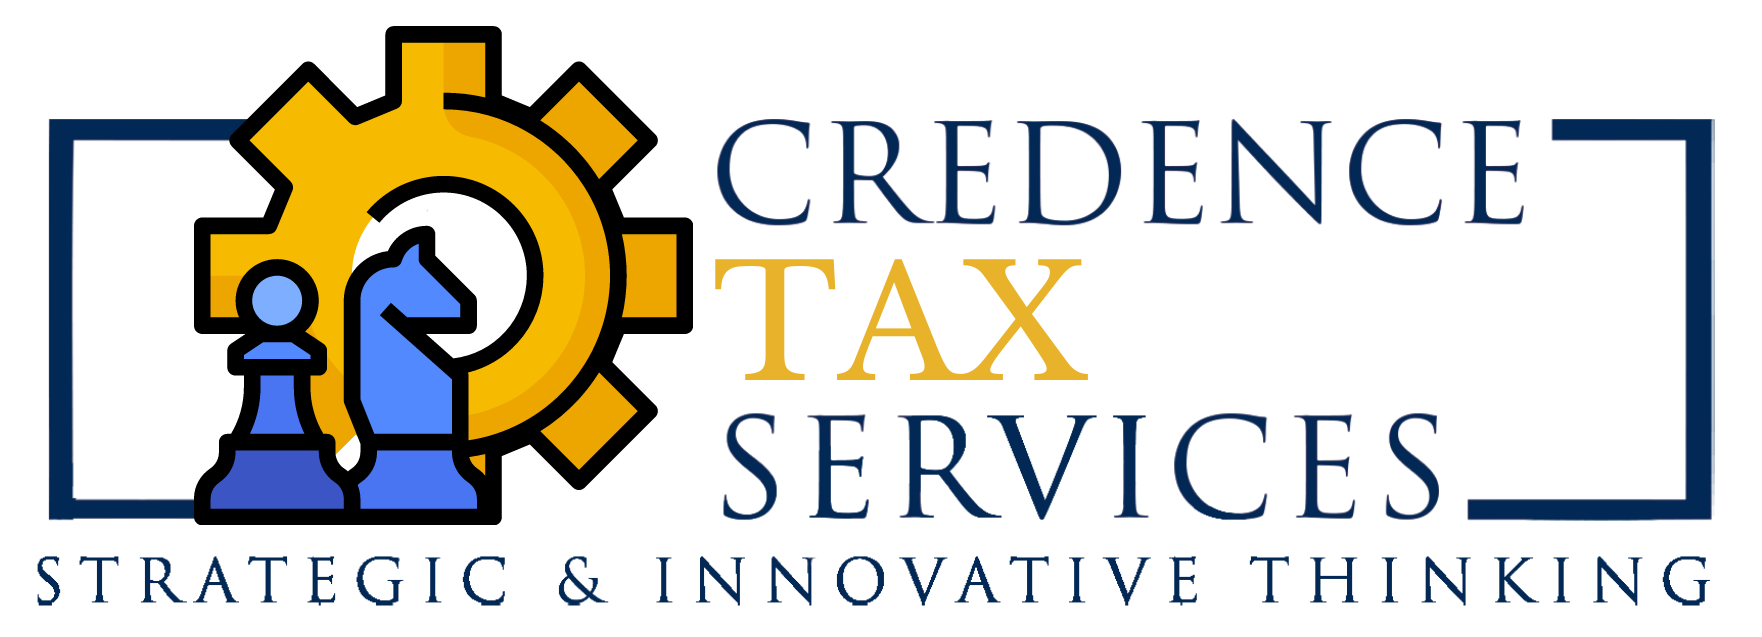 Credence Tax Services